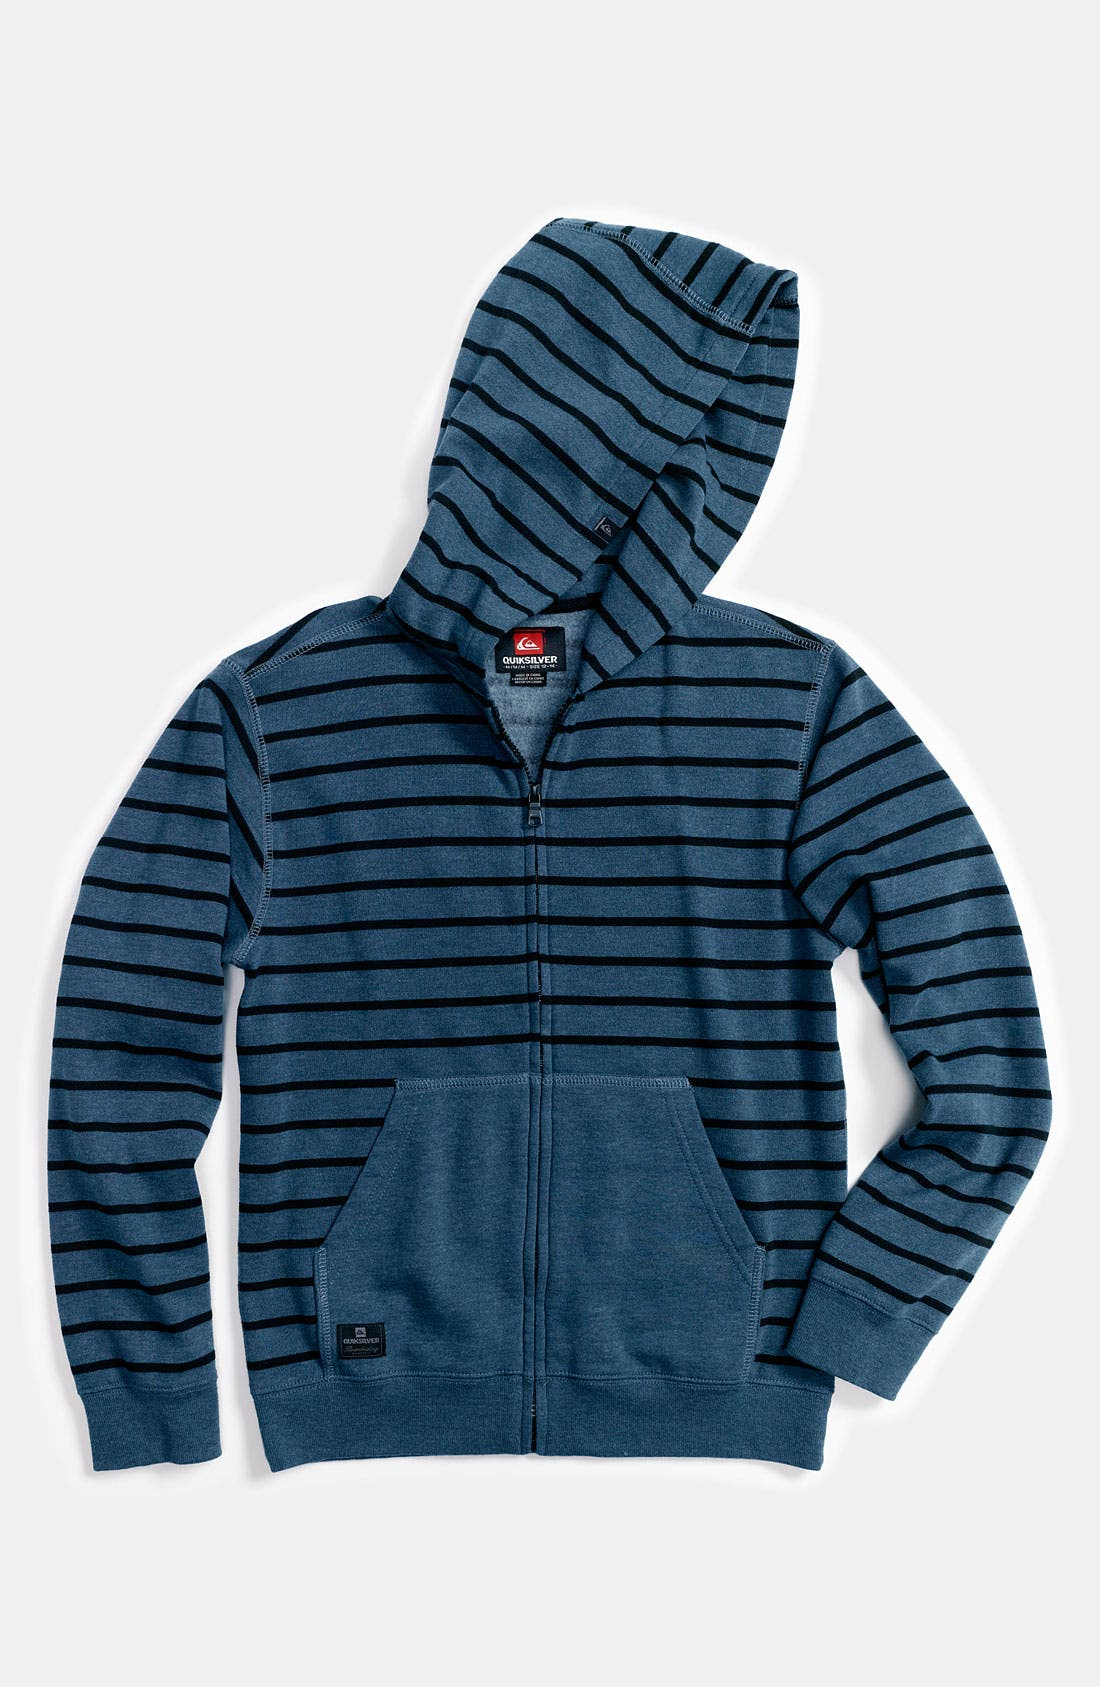 Main Image - Quiksilver 'Good Rev' Hoodie (Little Boys)